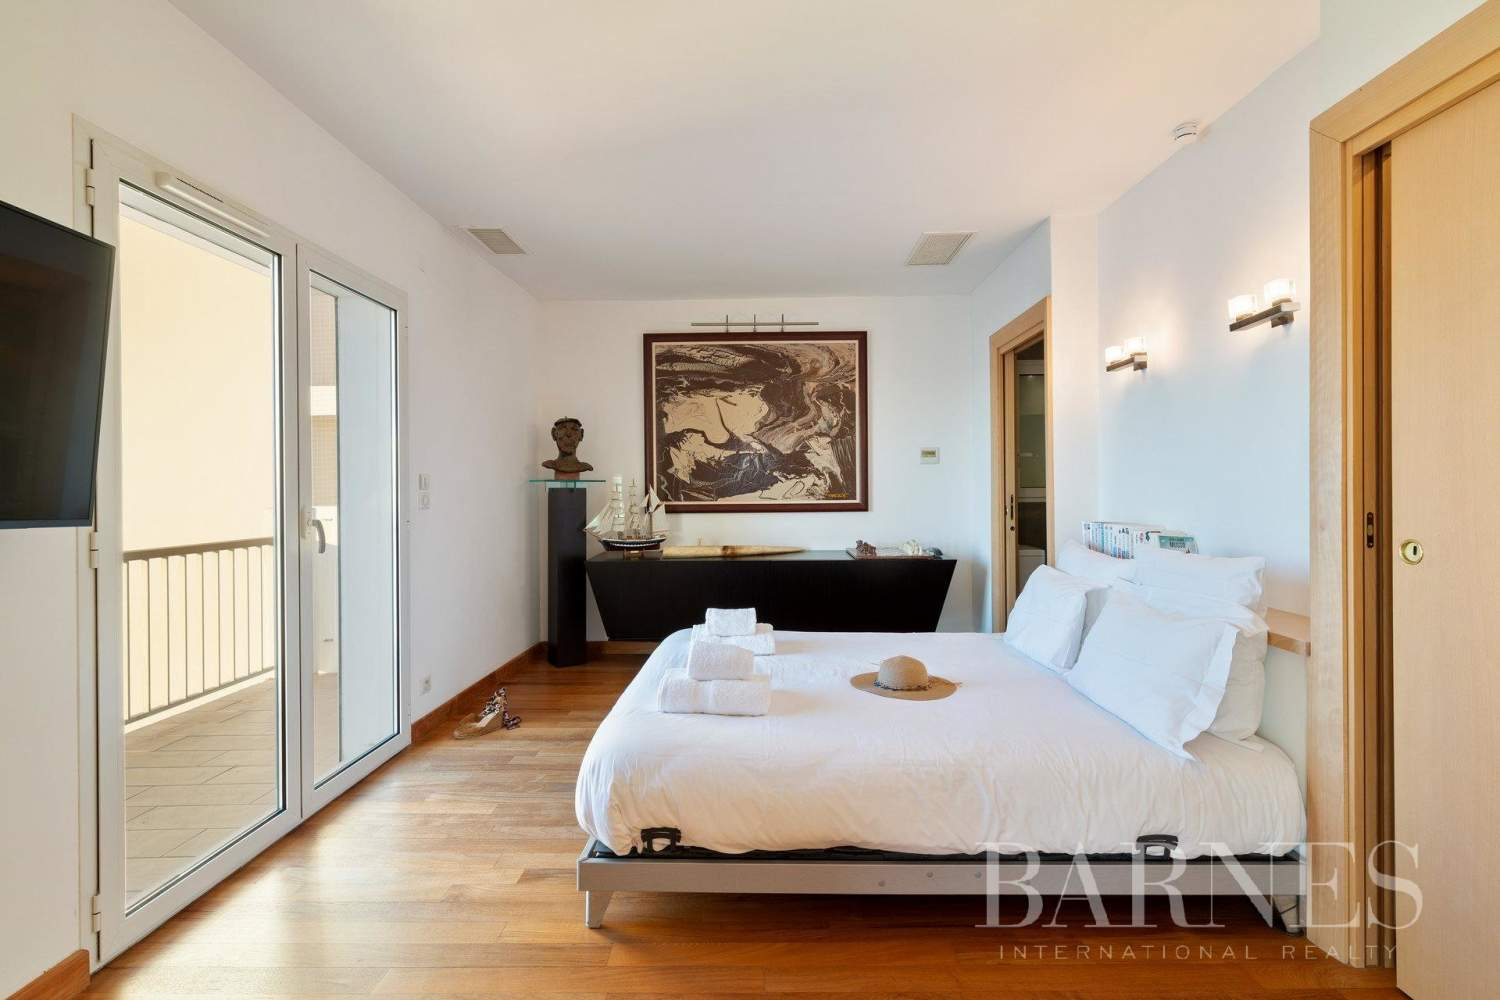 PANORAMA - IN THE HEART OF BIARRITZ RENOVATED APARTMENT WITH SEAVIEW FOR 4 PEOPLE picture 11